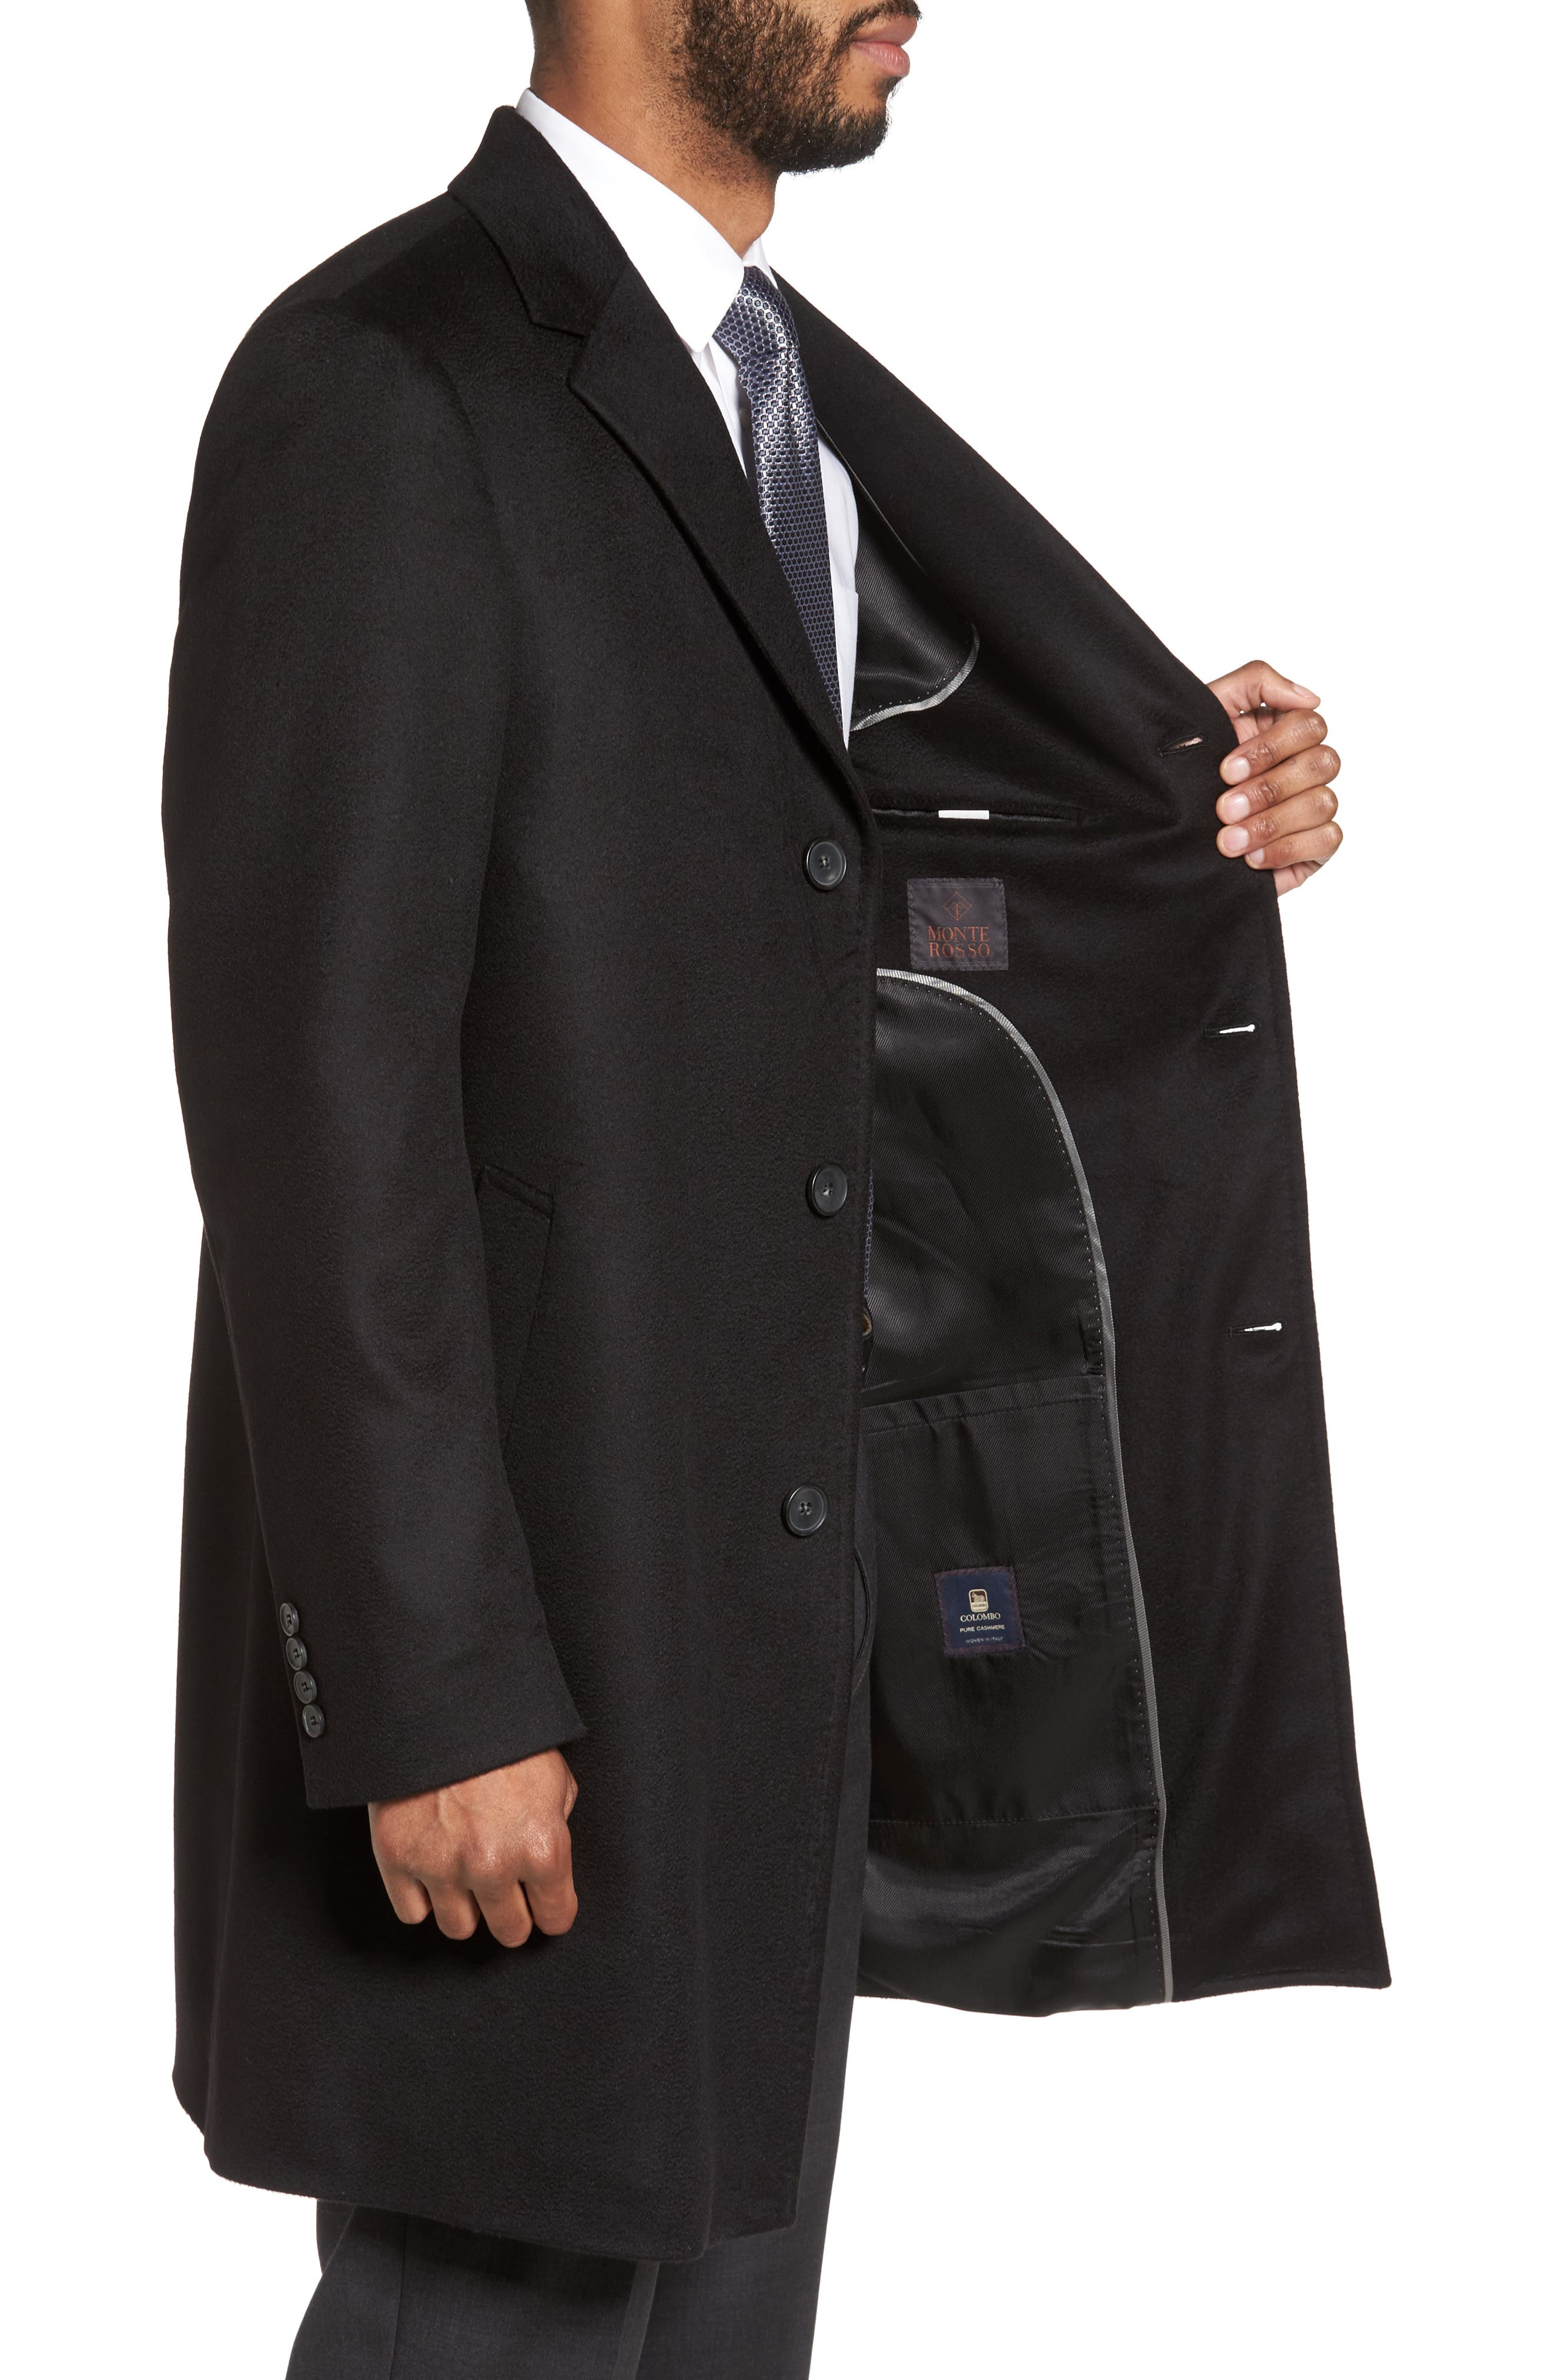 Carter Classic Fit Cashmere Overcoat,                             Alternate thumbnail 3, color,                             Black